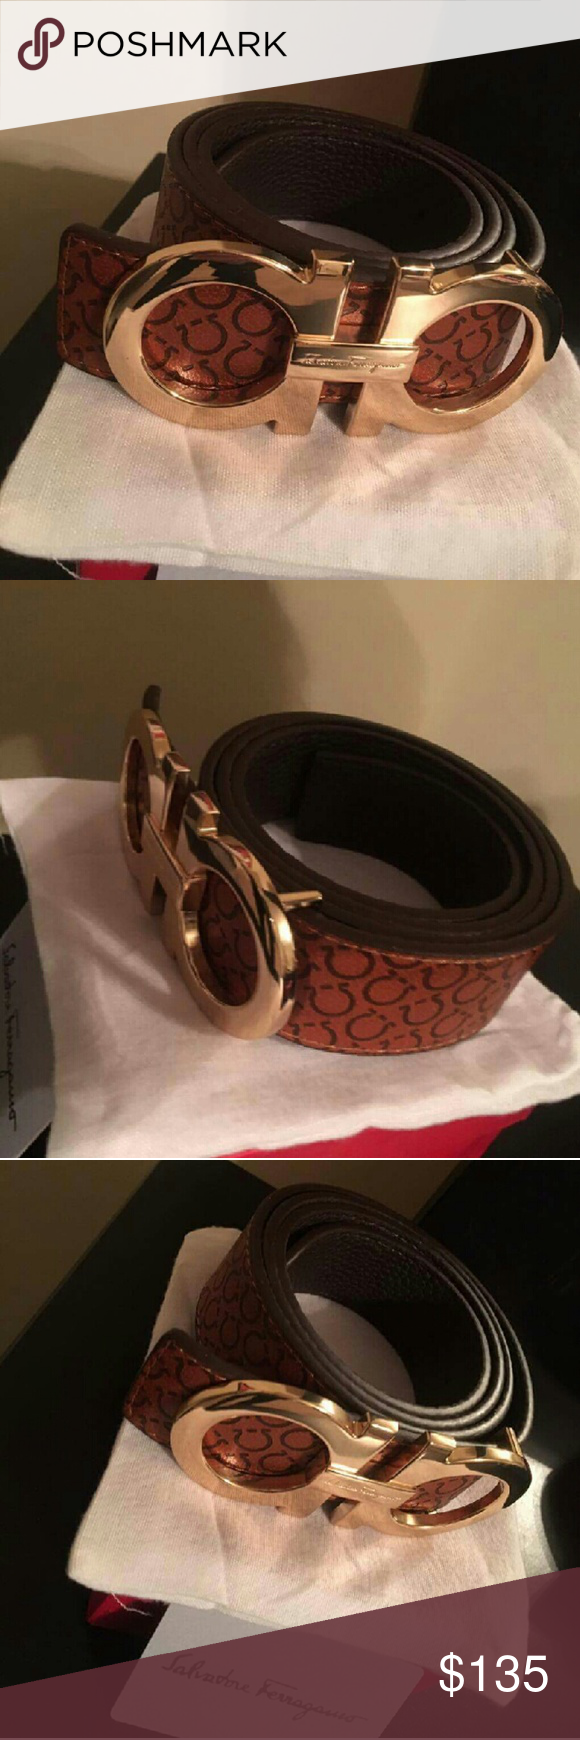 Ferragamo belt New Comes in the box with dust bag and card.  Bundle deals  Shipped same day or next day  Best deals Ferragamo Accessories Belts